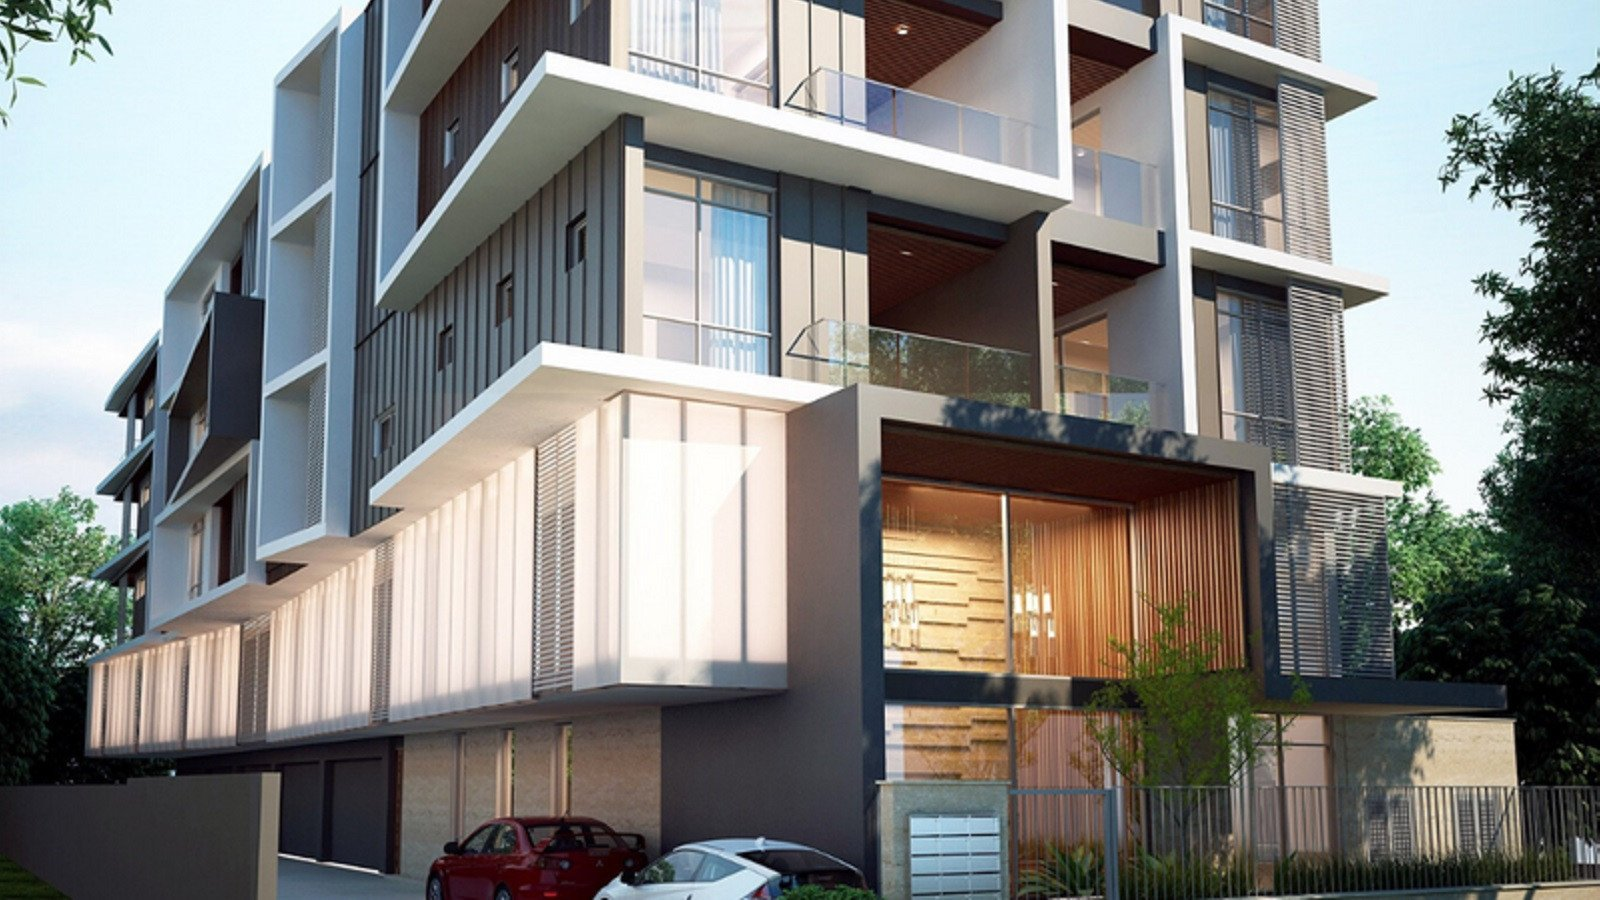 Clydesdale Apartments-image-1